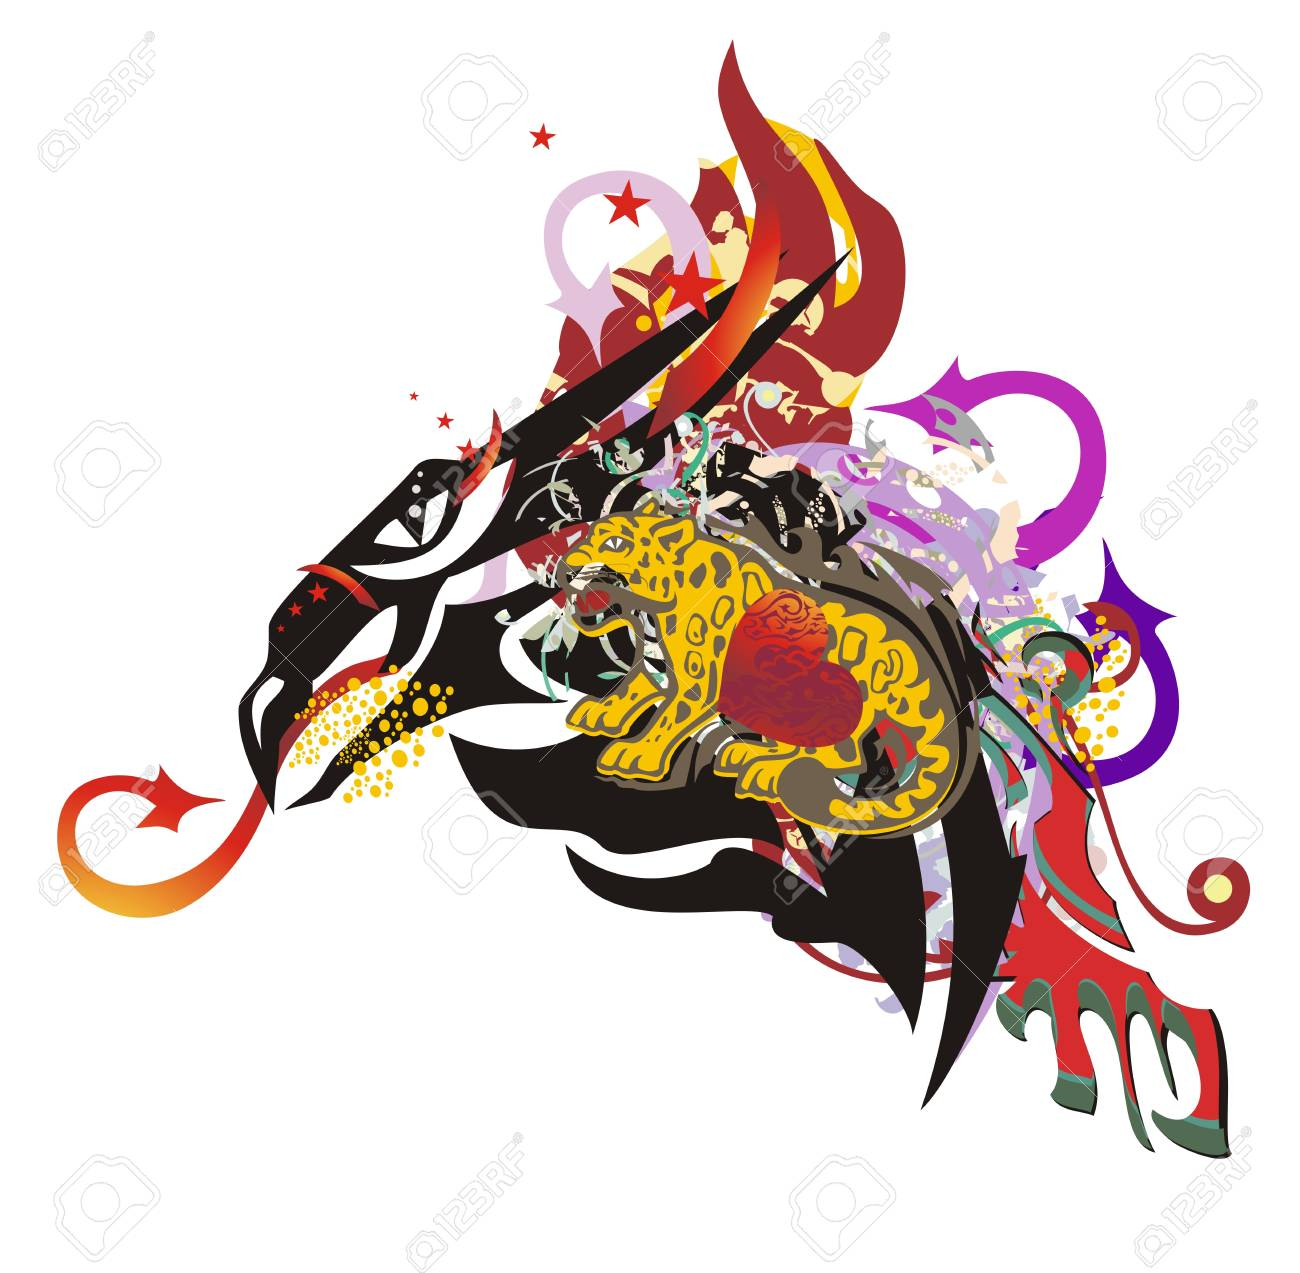 Flaming Dragon Head Symbol In Grunge Style Peaked Dragon With